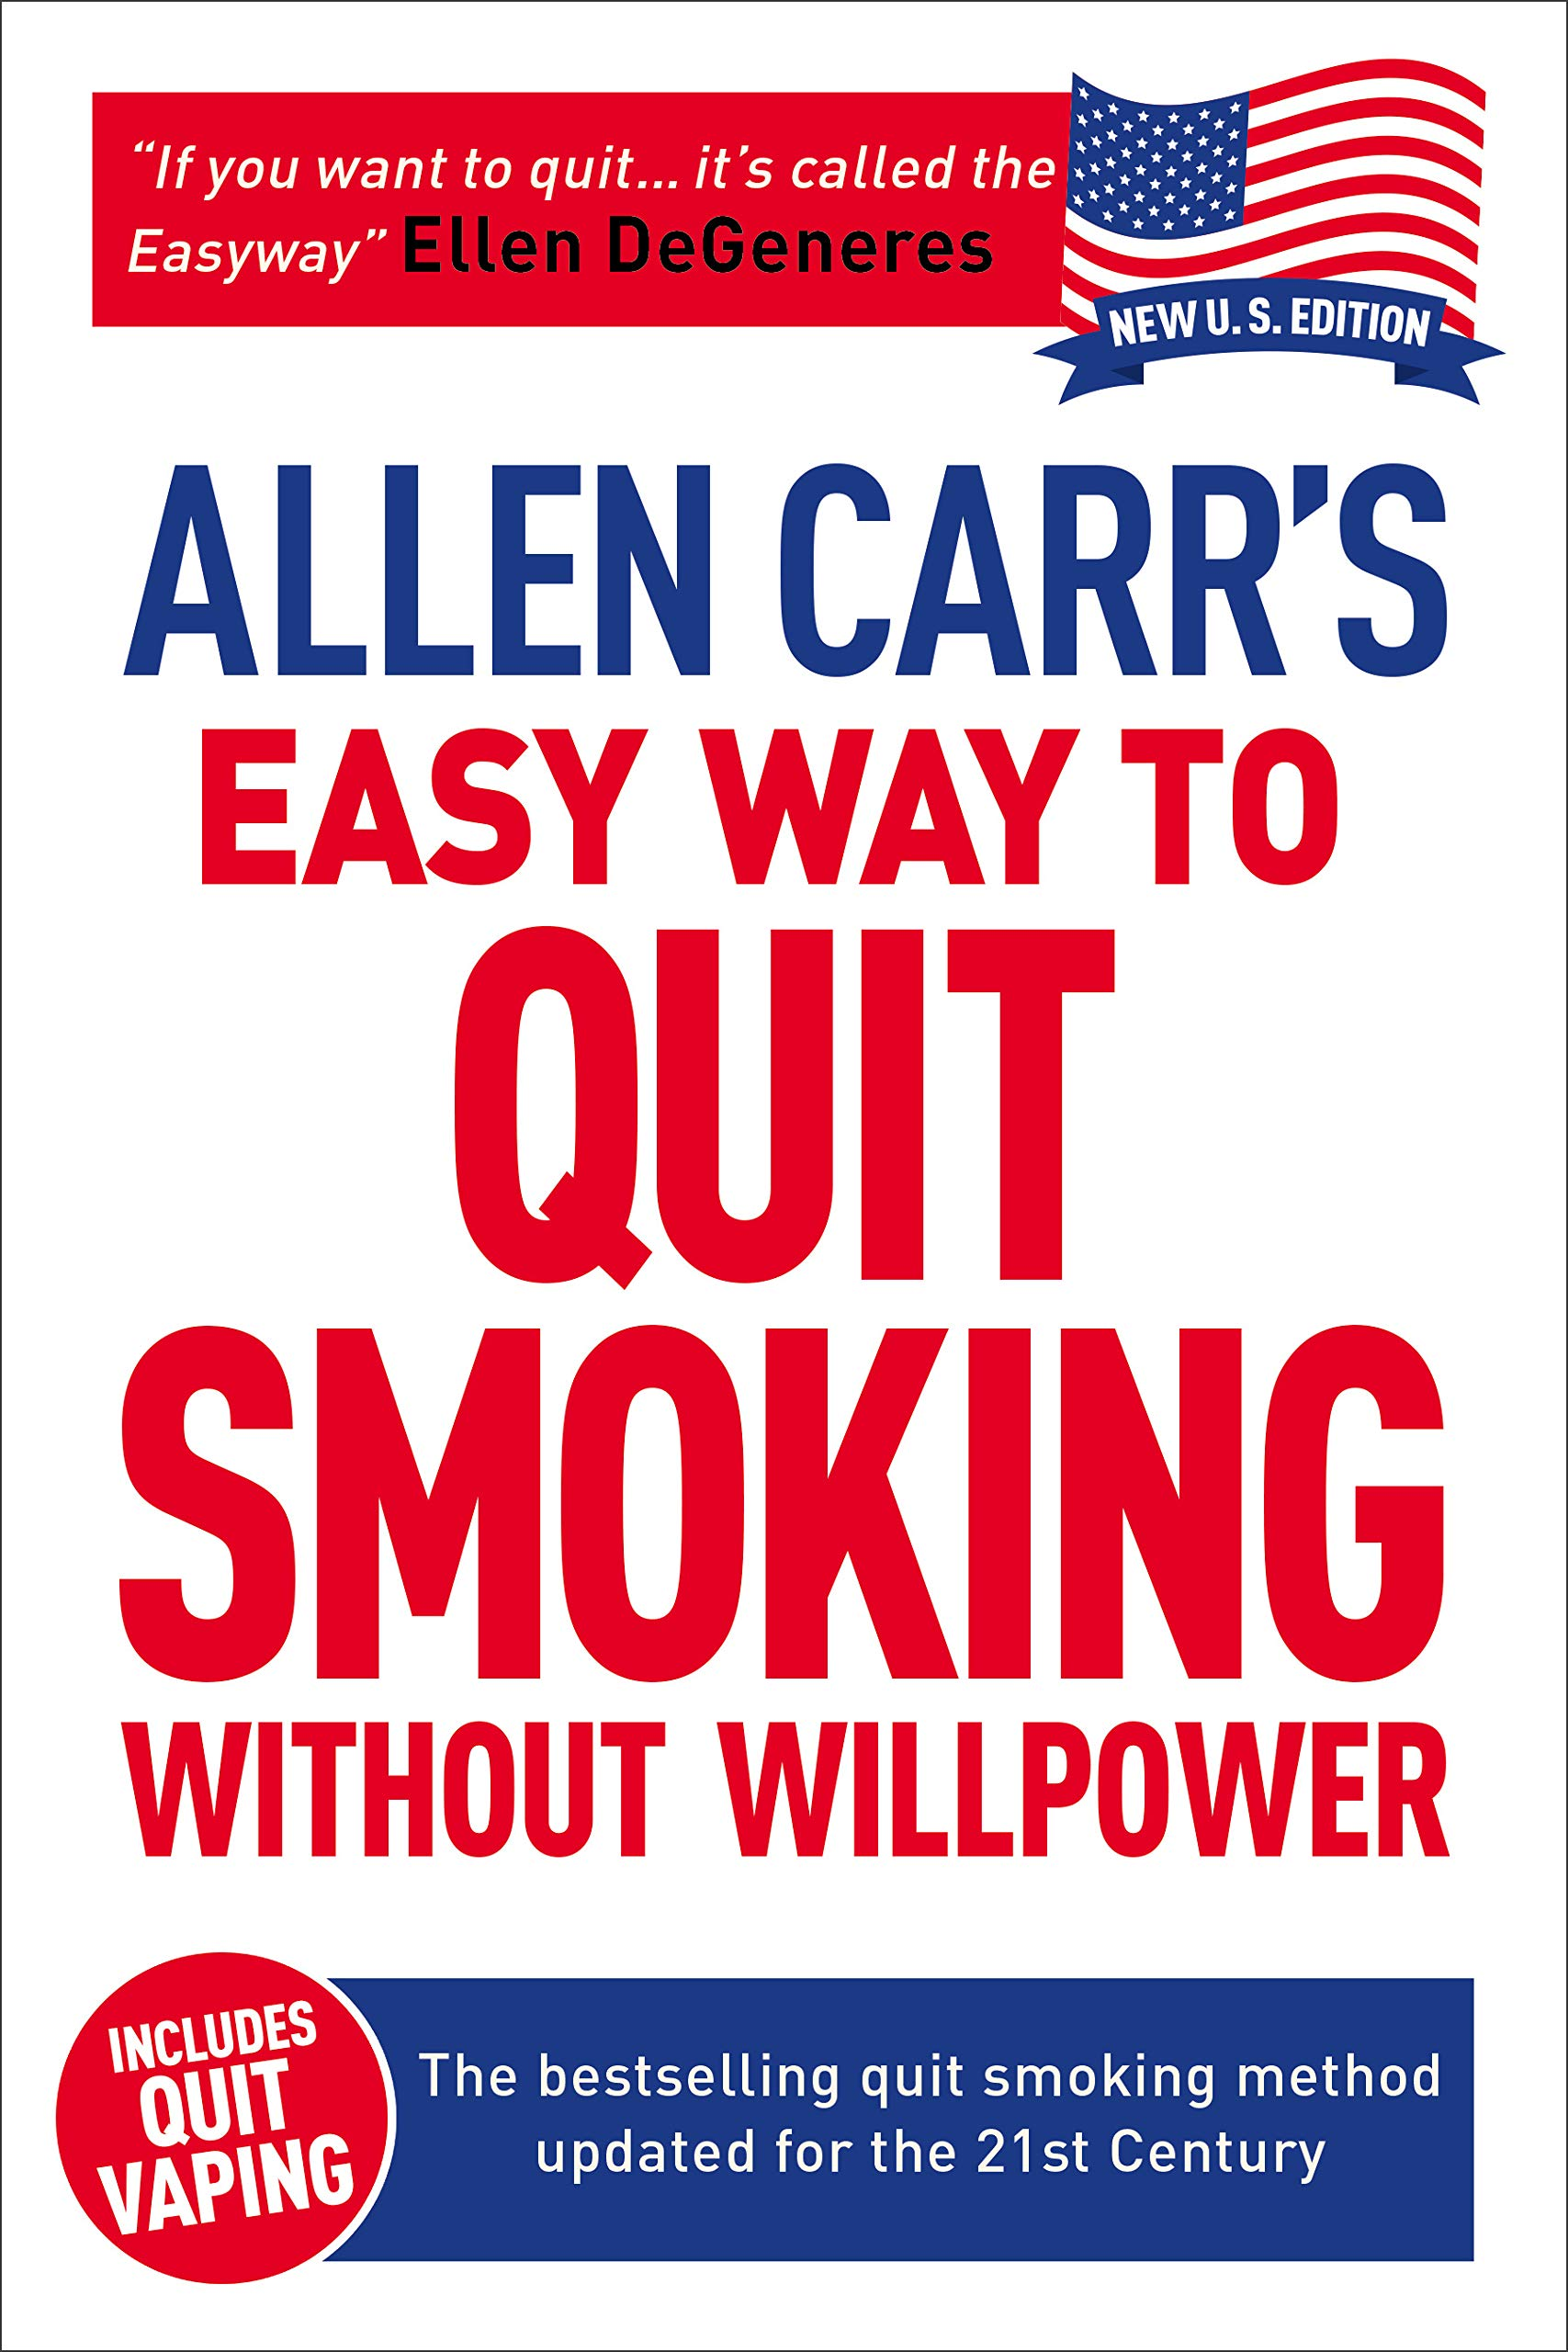 Allen Carr's Easy Way to Quit Smoking Without Willpower - Incudes Quit Vaping: The best-selling quit smoking method updated for the 21st century 1